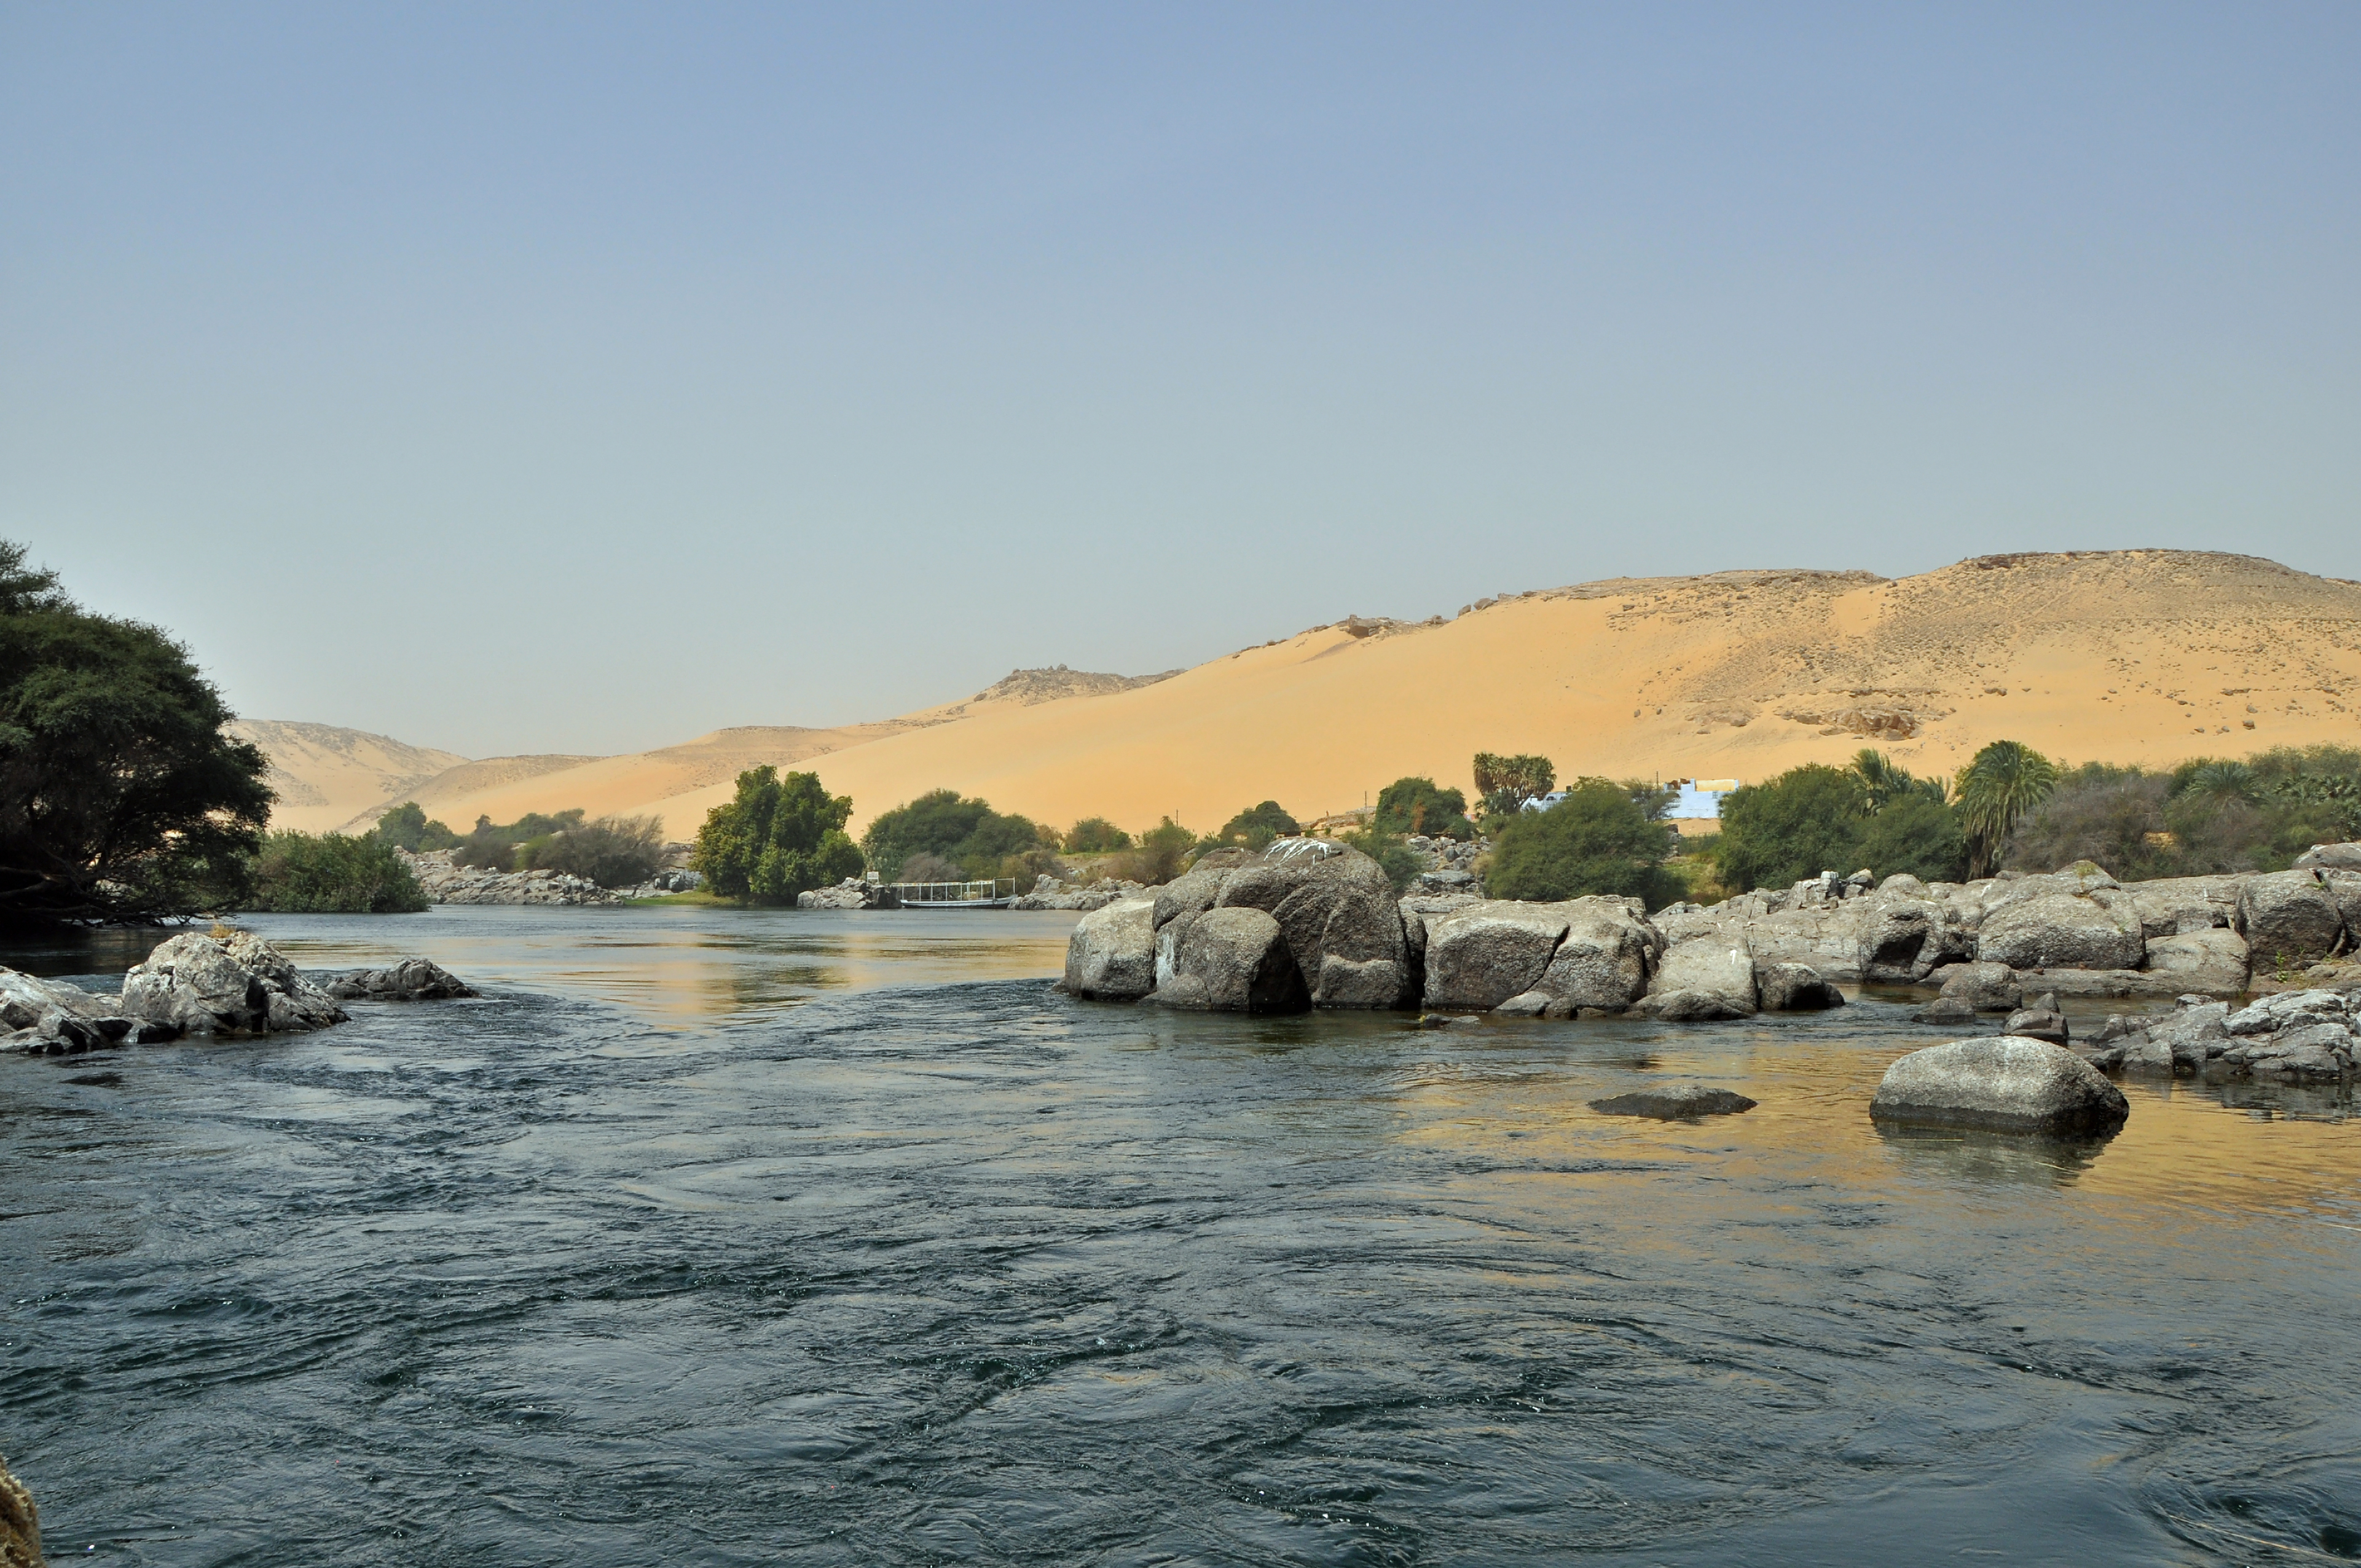 cataracts of the nile - wikipedia